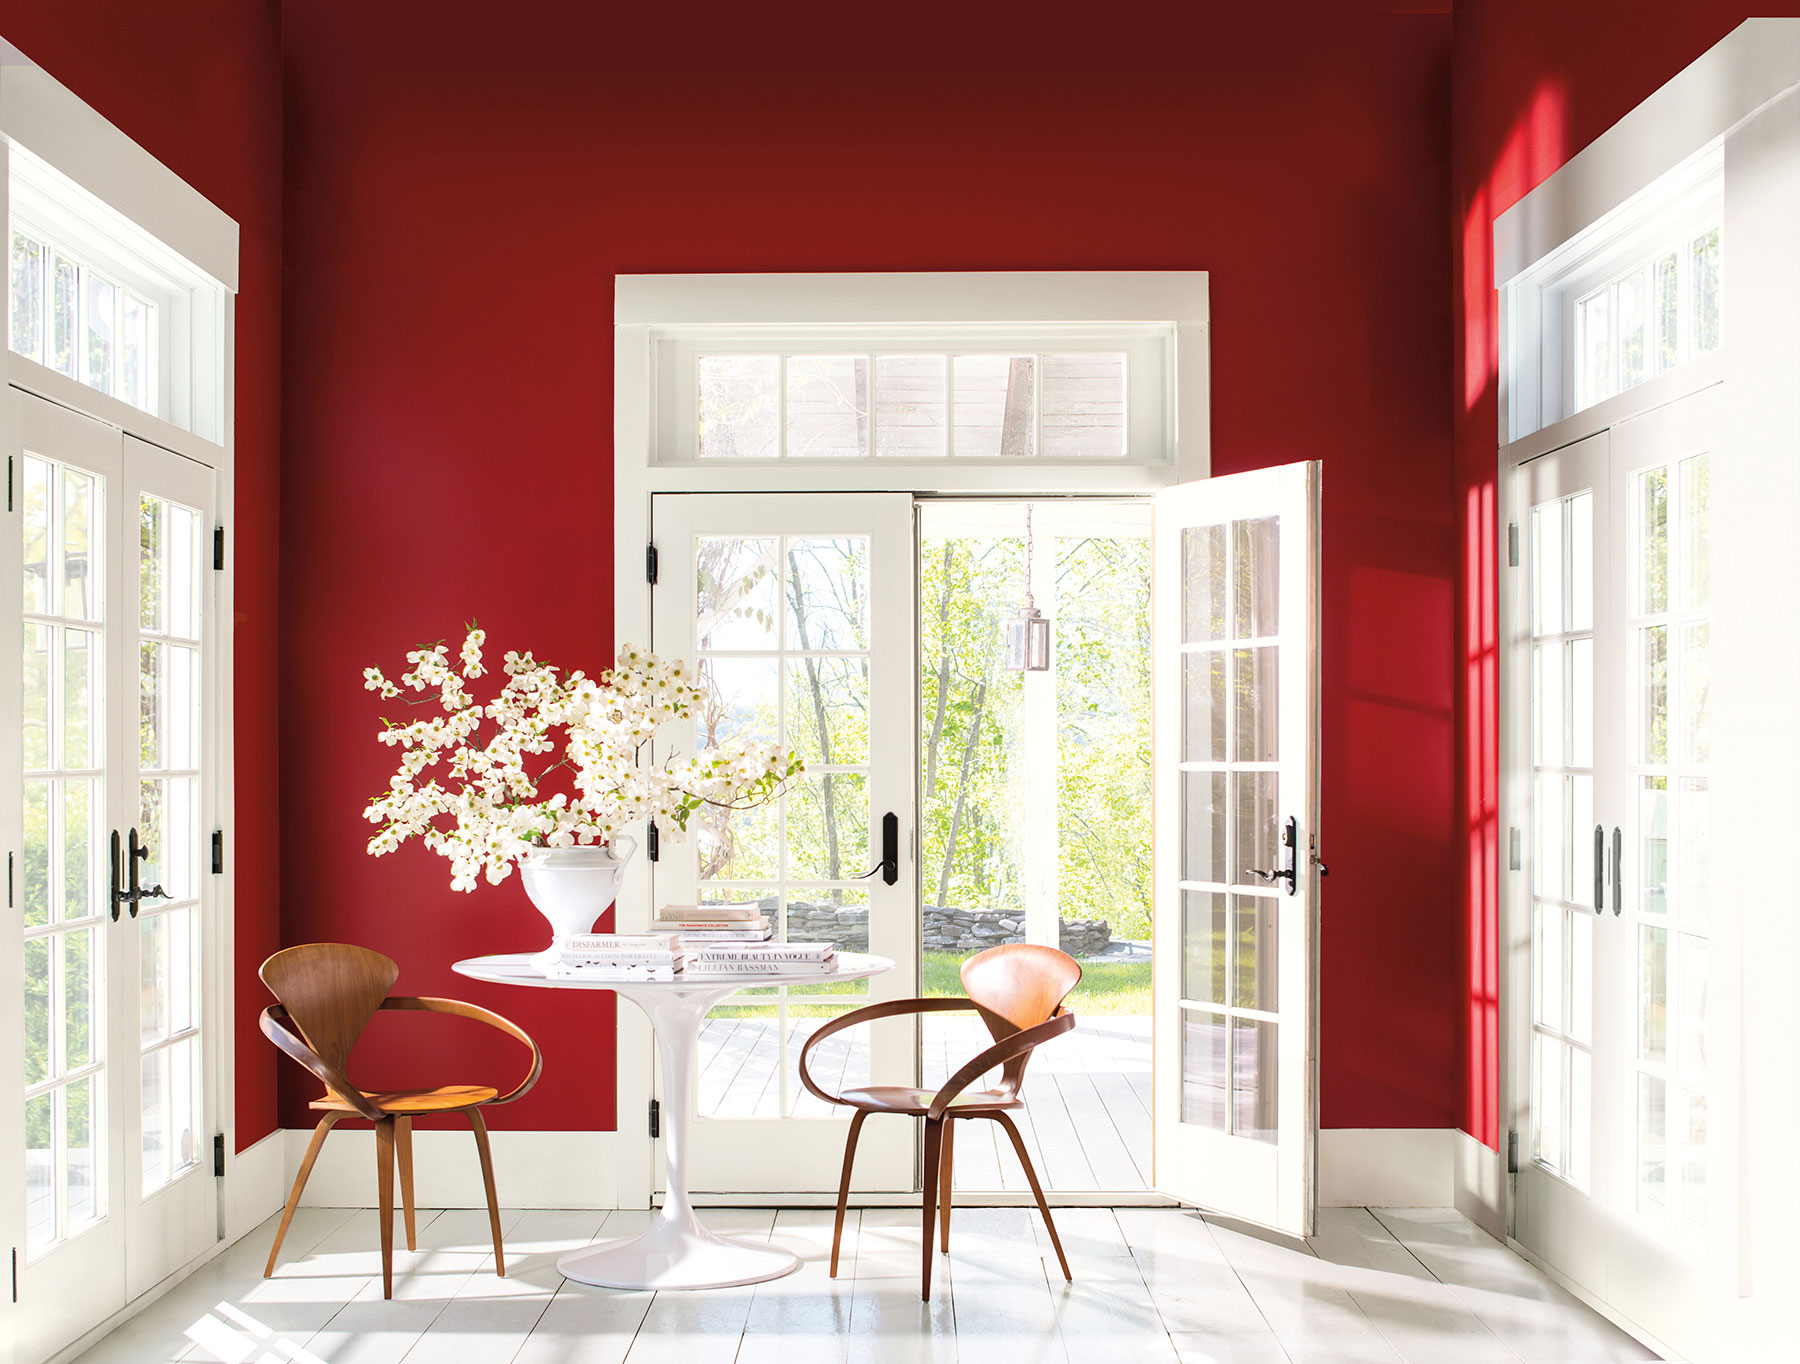 """3. Benjamin Moore - Caliente - Another contender for Colour of the Year 2018 is leading American paint brand, Benjamin Moore. In a bold contradiction to the earthen hues of Heart Wood and Fire Within (although actually staying within the same colour family), Caliente has been revealed as Benjamin Moore's headlining colour. Described as a """"warm, enveloping and seductive hue"""" this powerful red tone is not one for the colour shy! When paired with crisp white, the red's vibrancy pops off the wall with maximum impact, but for a more homely look, the richness of Caliente can be toned down by teaming with natural wood and other complementary colours in the brand's corresponding palette of 22 enlivening hues.Ellen O'Neill, Benjamin Moore Director of Strategic Design Intelligence:""""Strong, radiant, full of energy, Caliente is total confidence. It's the signature colour of a modern architectural masterpiece; a lush carpet rolled out for a grand arrival; the assured backdrop for a book-lined library; a powerful first impression on a glossy front door. The eye can't help but follow its bold strokes. Harness the vitality.""""Prices start from £20.50 for 0.94L of paint from the Regal Select Flat rangewww.benjaminmoorepaint.co.uk"""